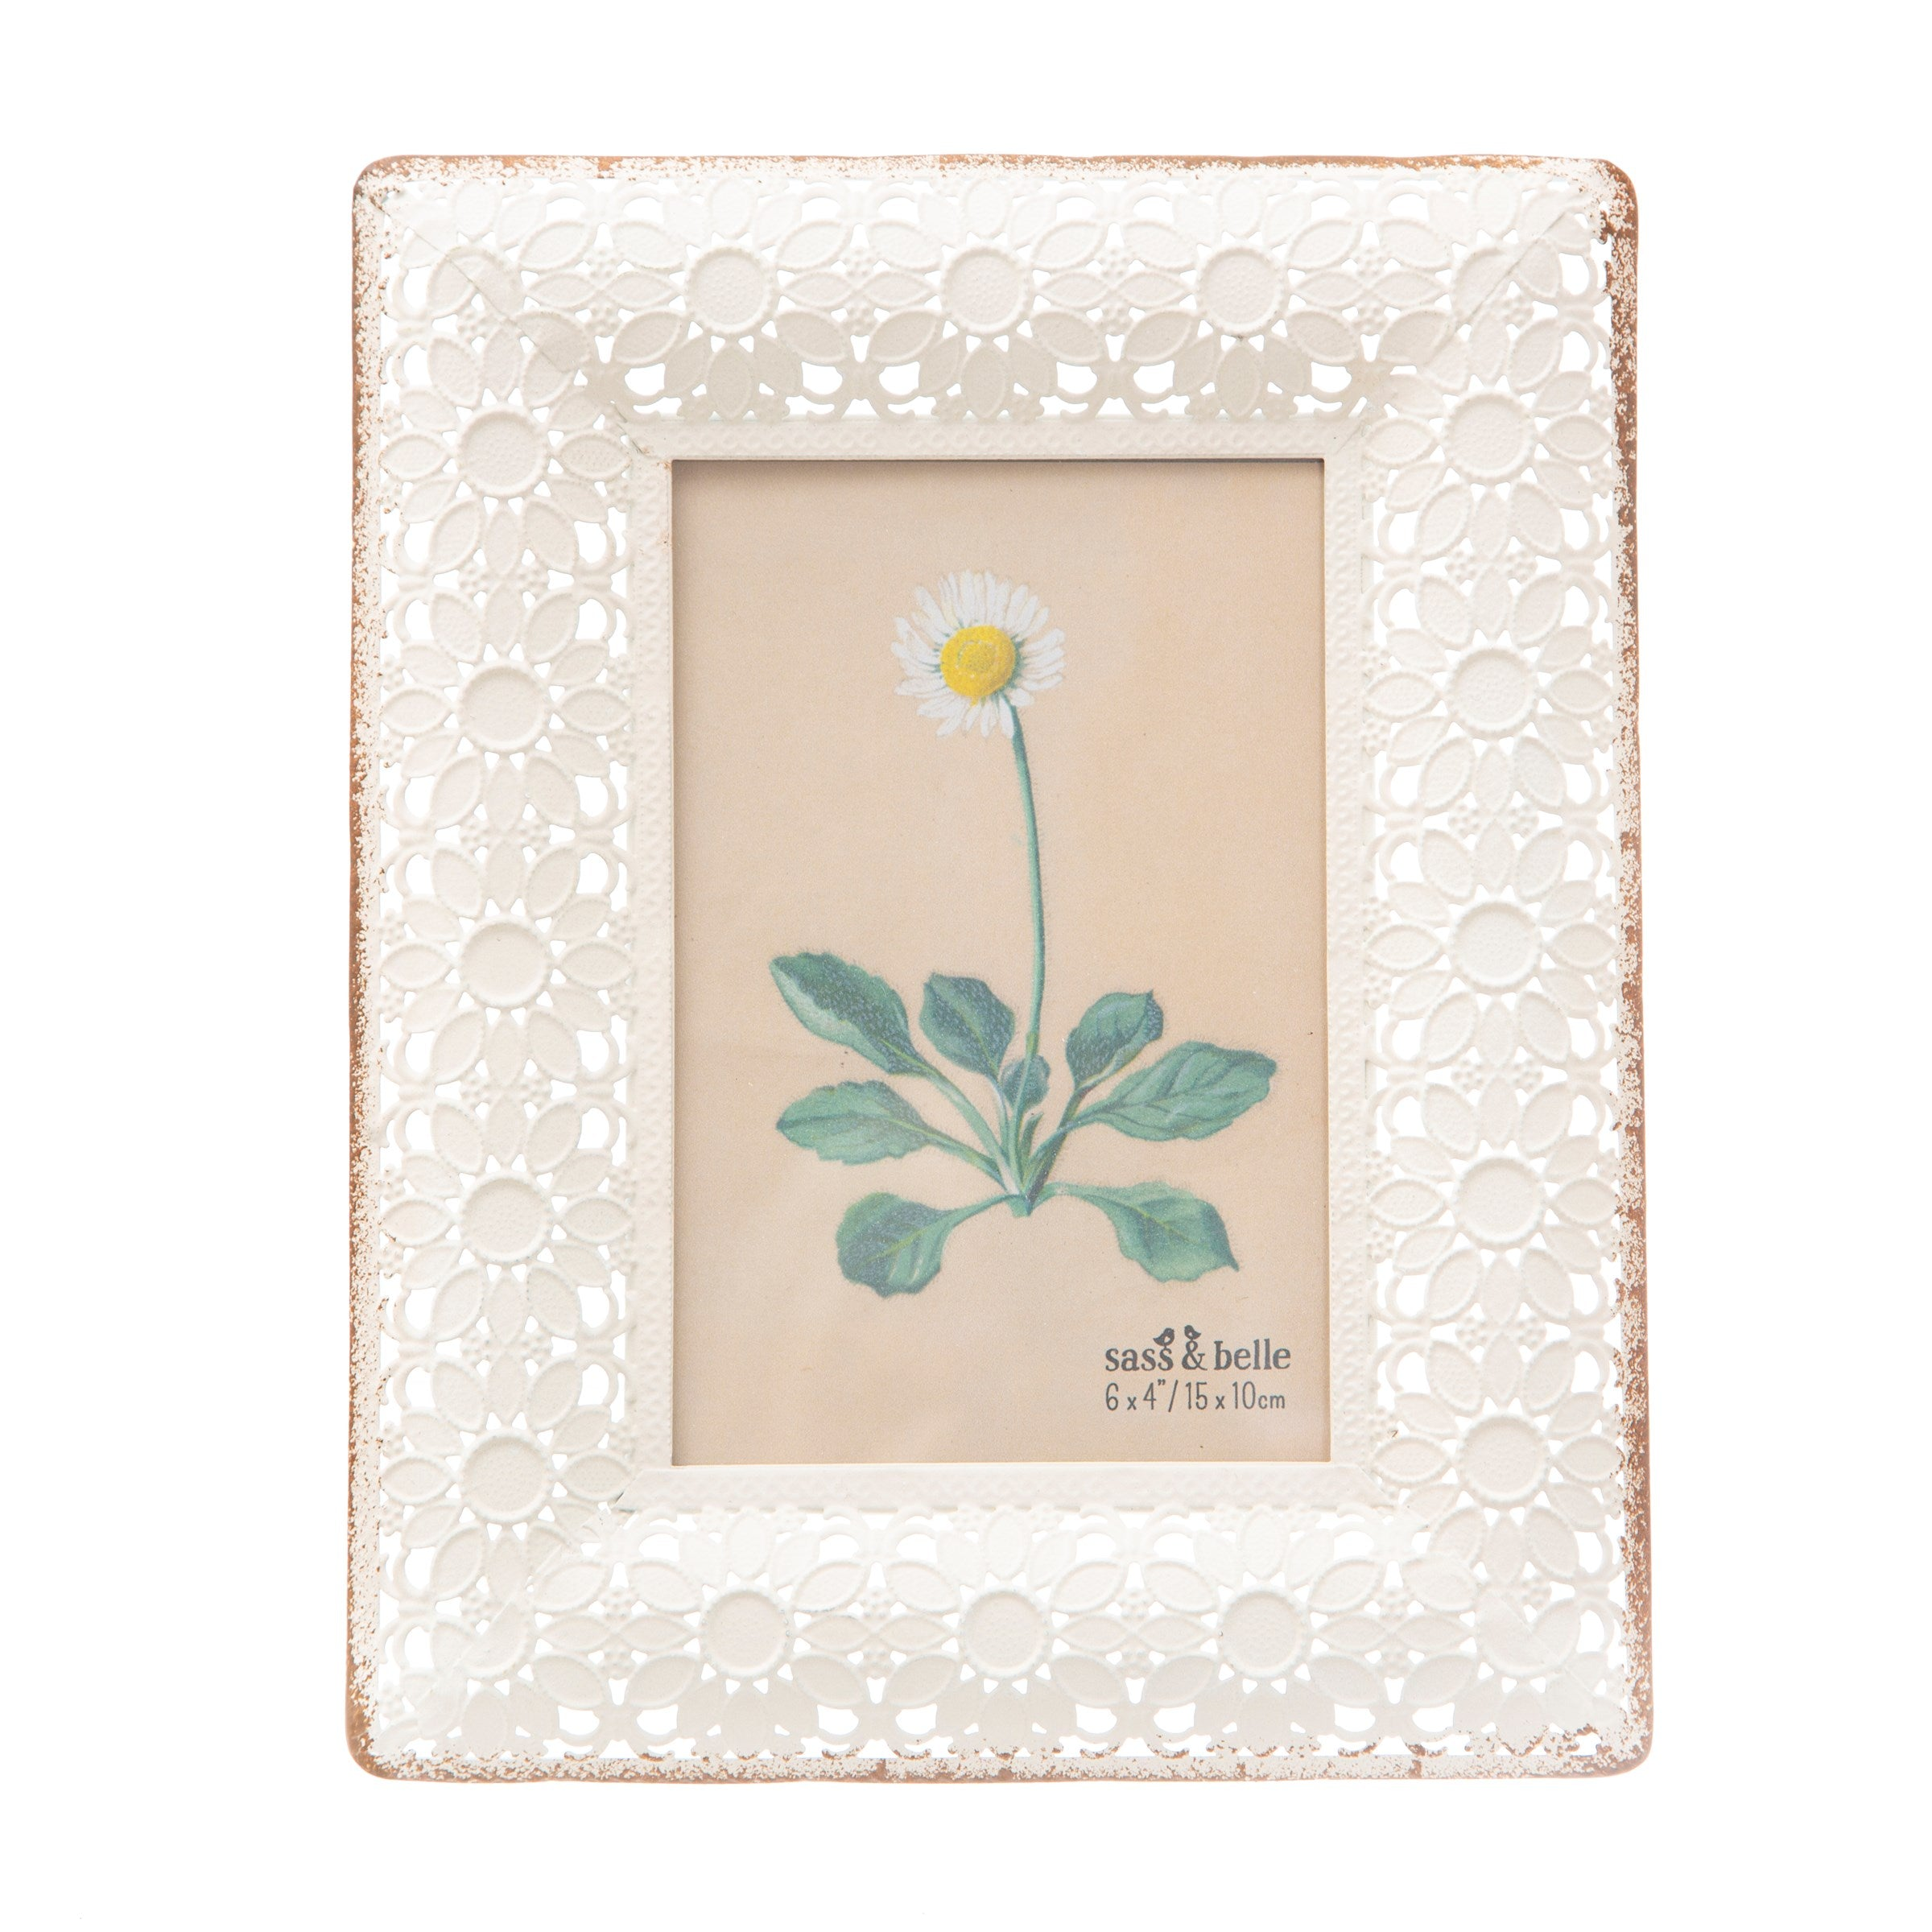 Sass & Belle Photo Frame - Floral White or Green